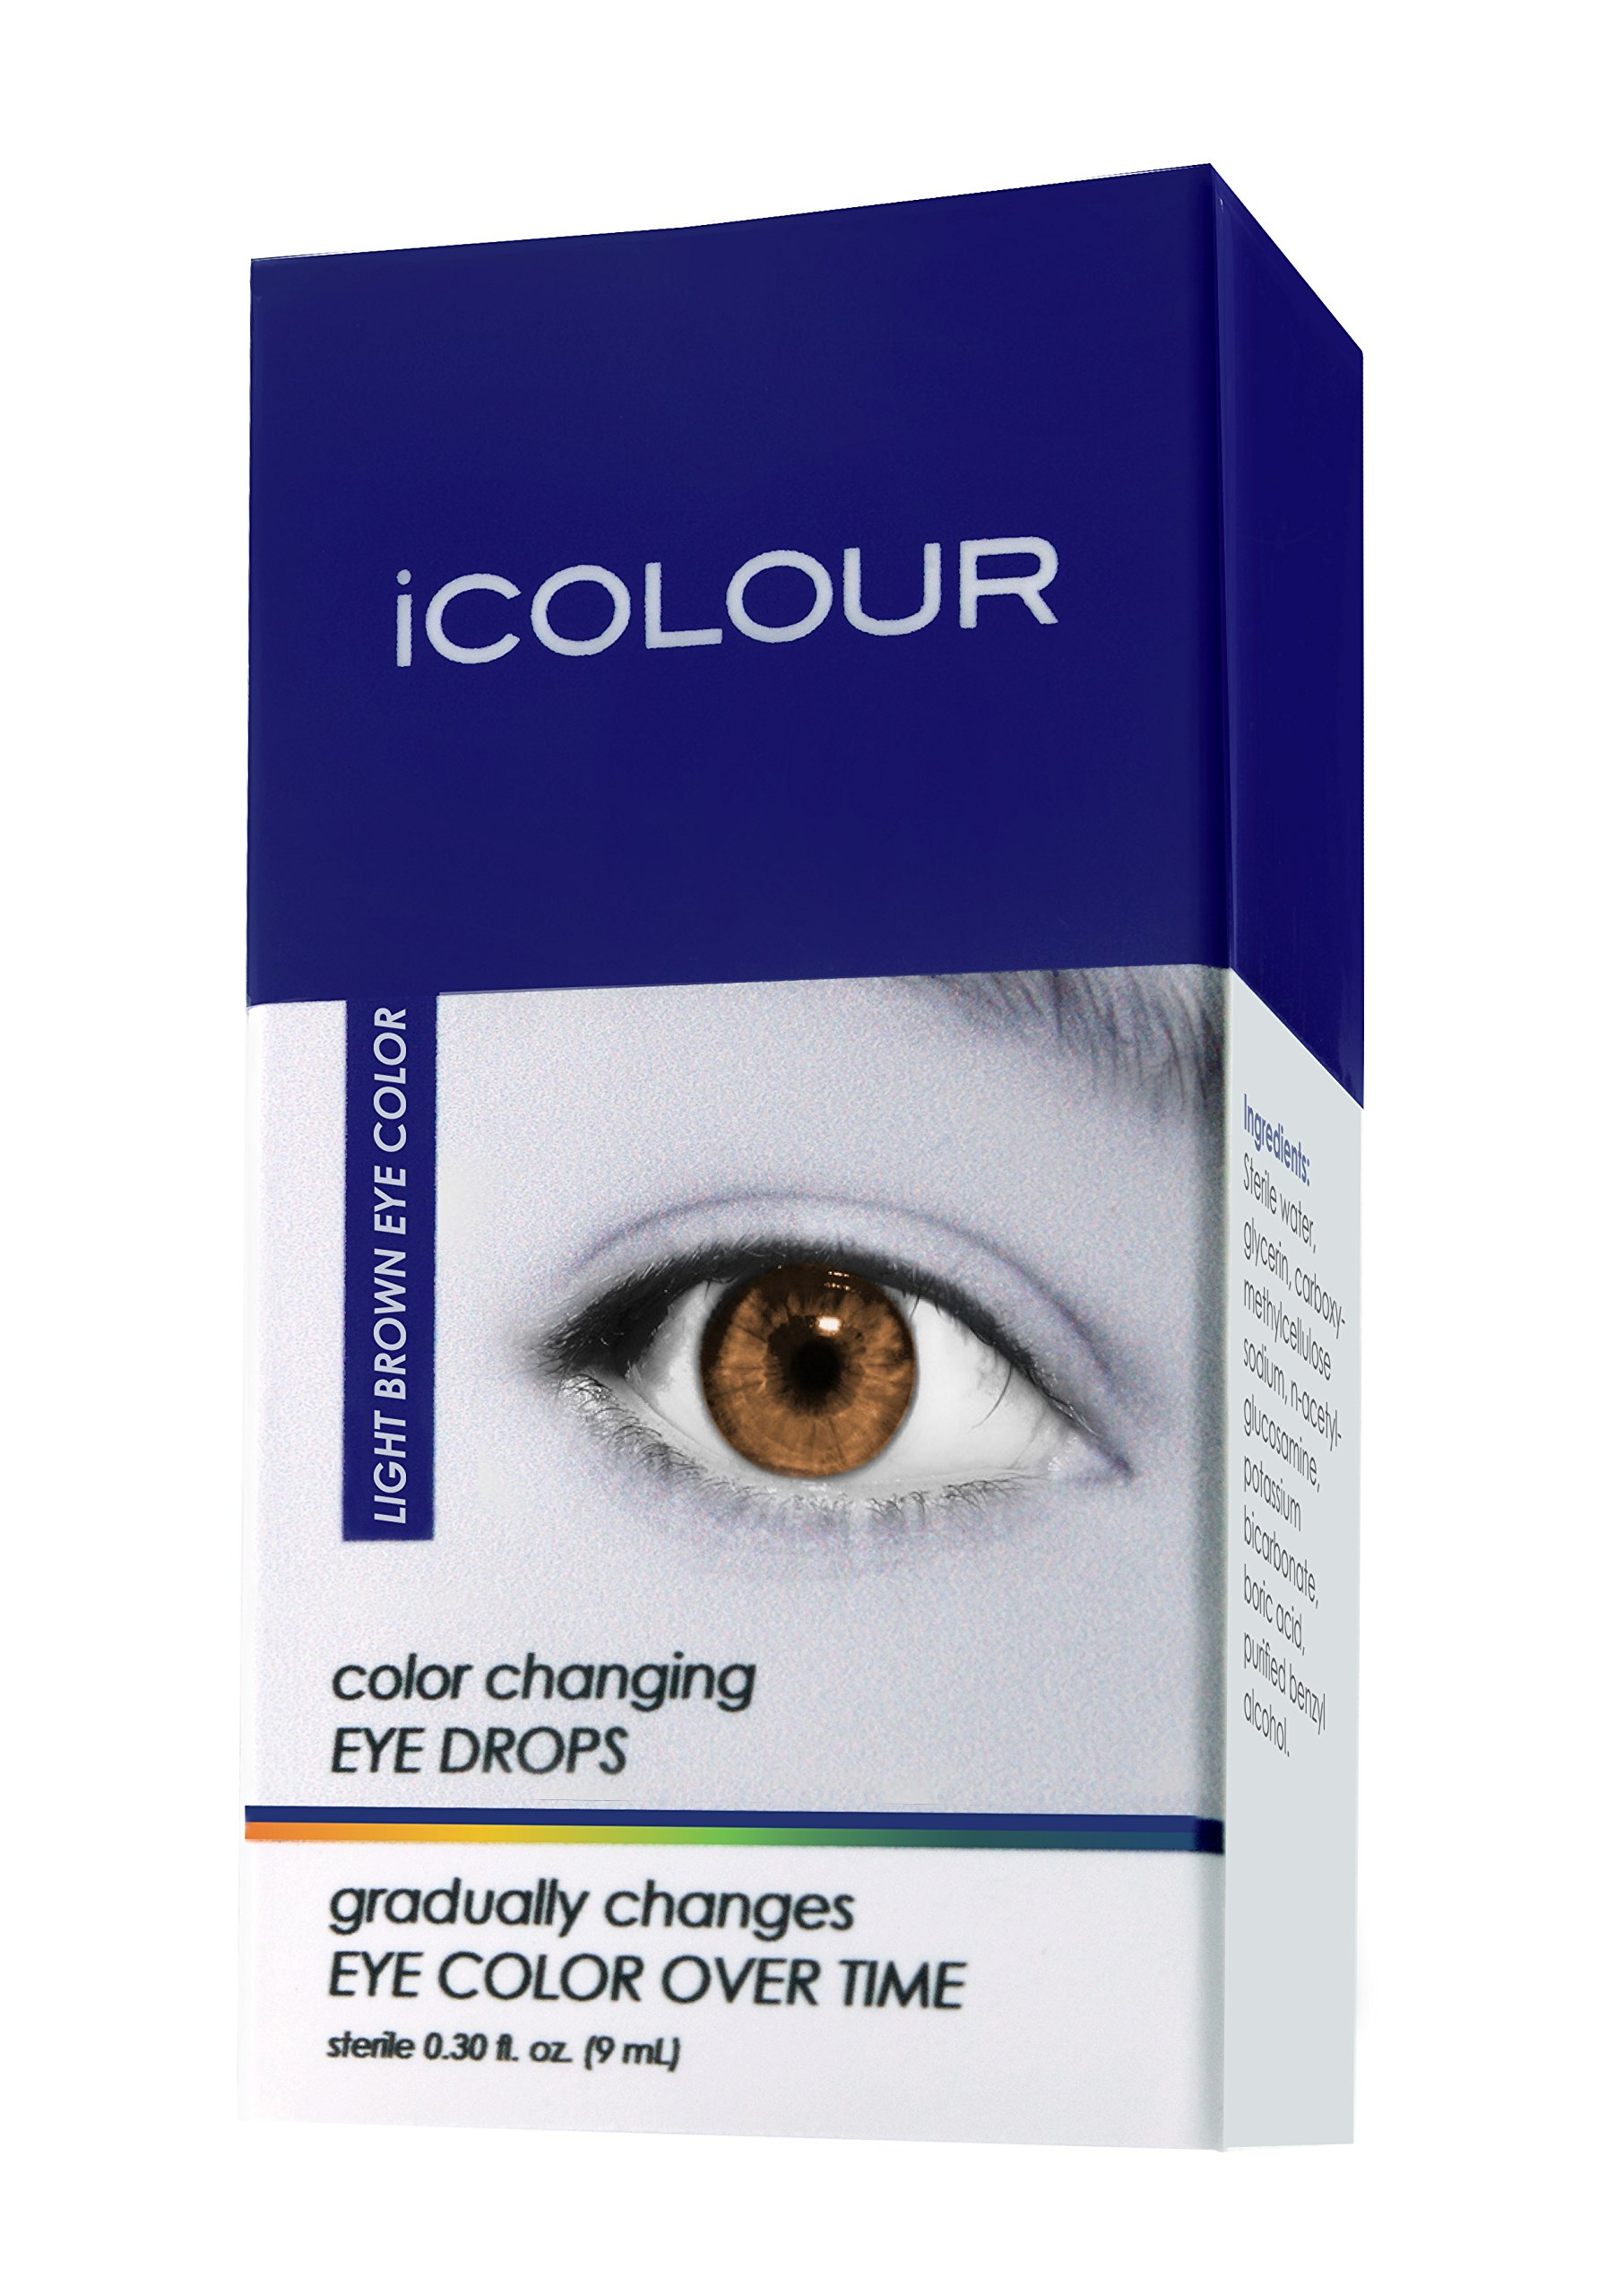 Icolour Color Changing Eye Drops Change Your Yellow Glass Avatar Eyeball Sterling Silver Wire Wrapped Ring Any Naturally 1 Month Supply